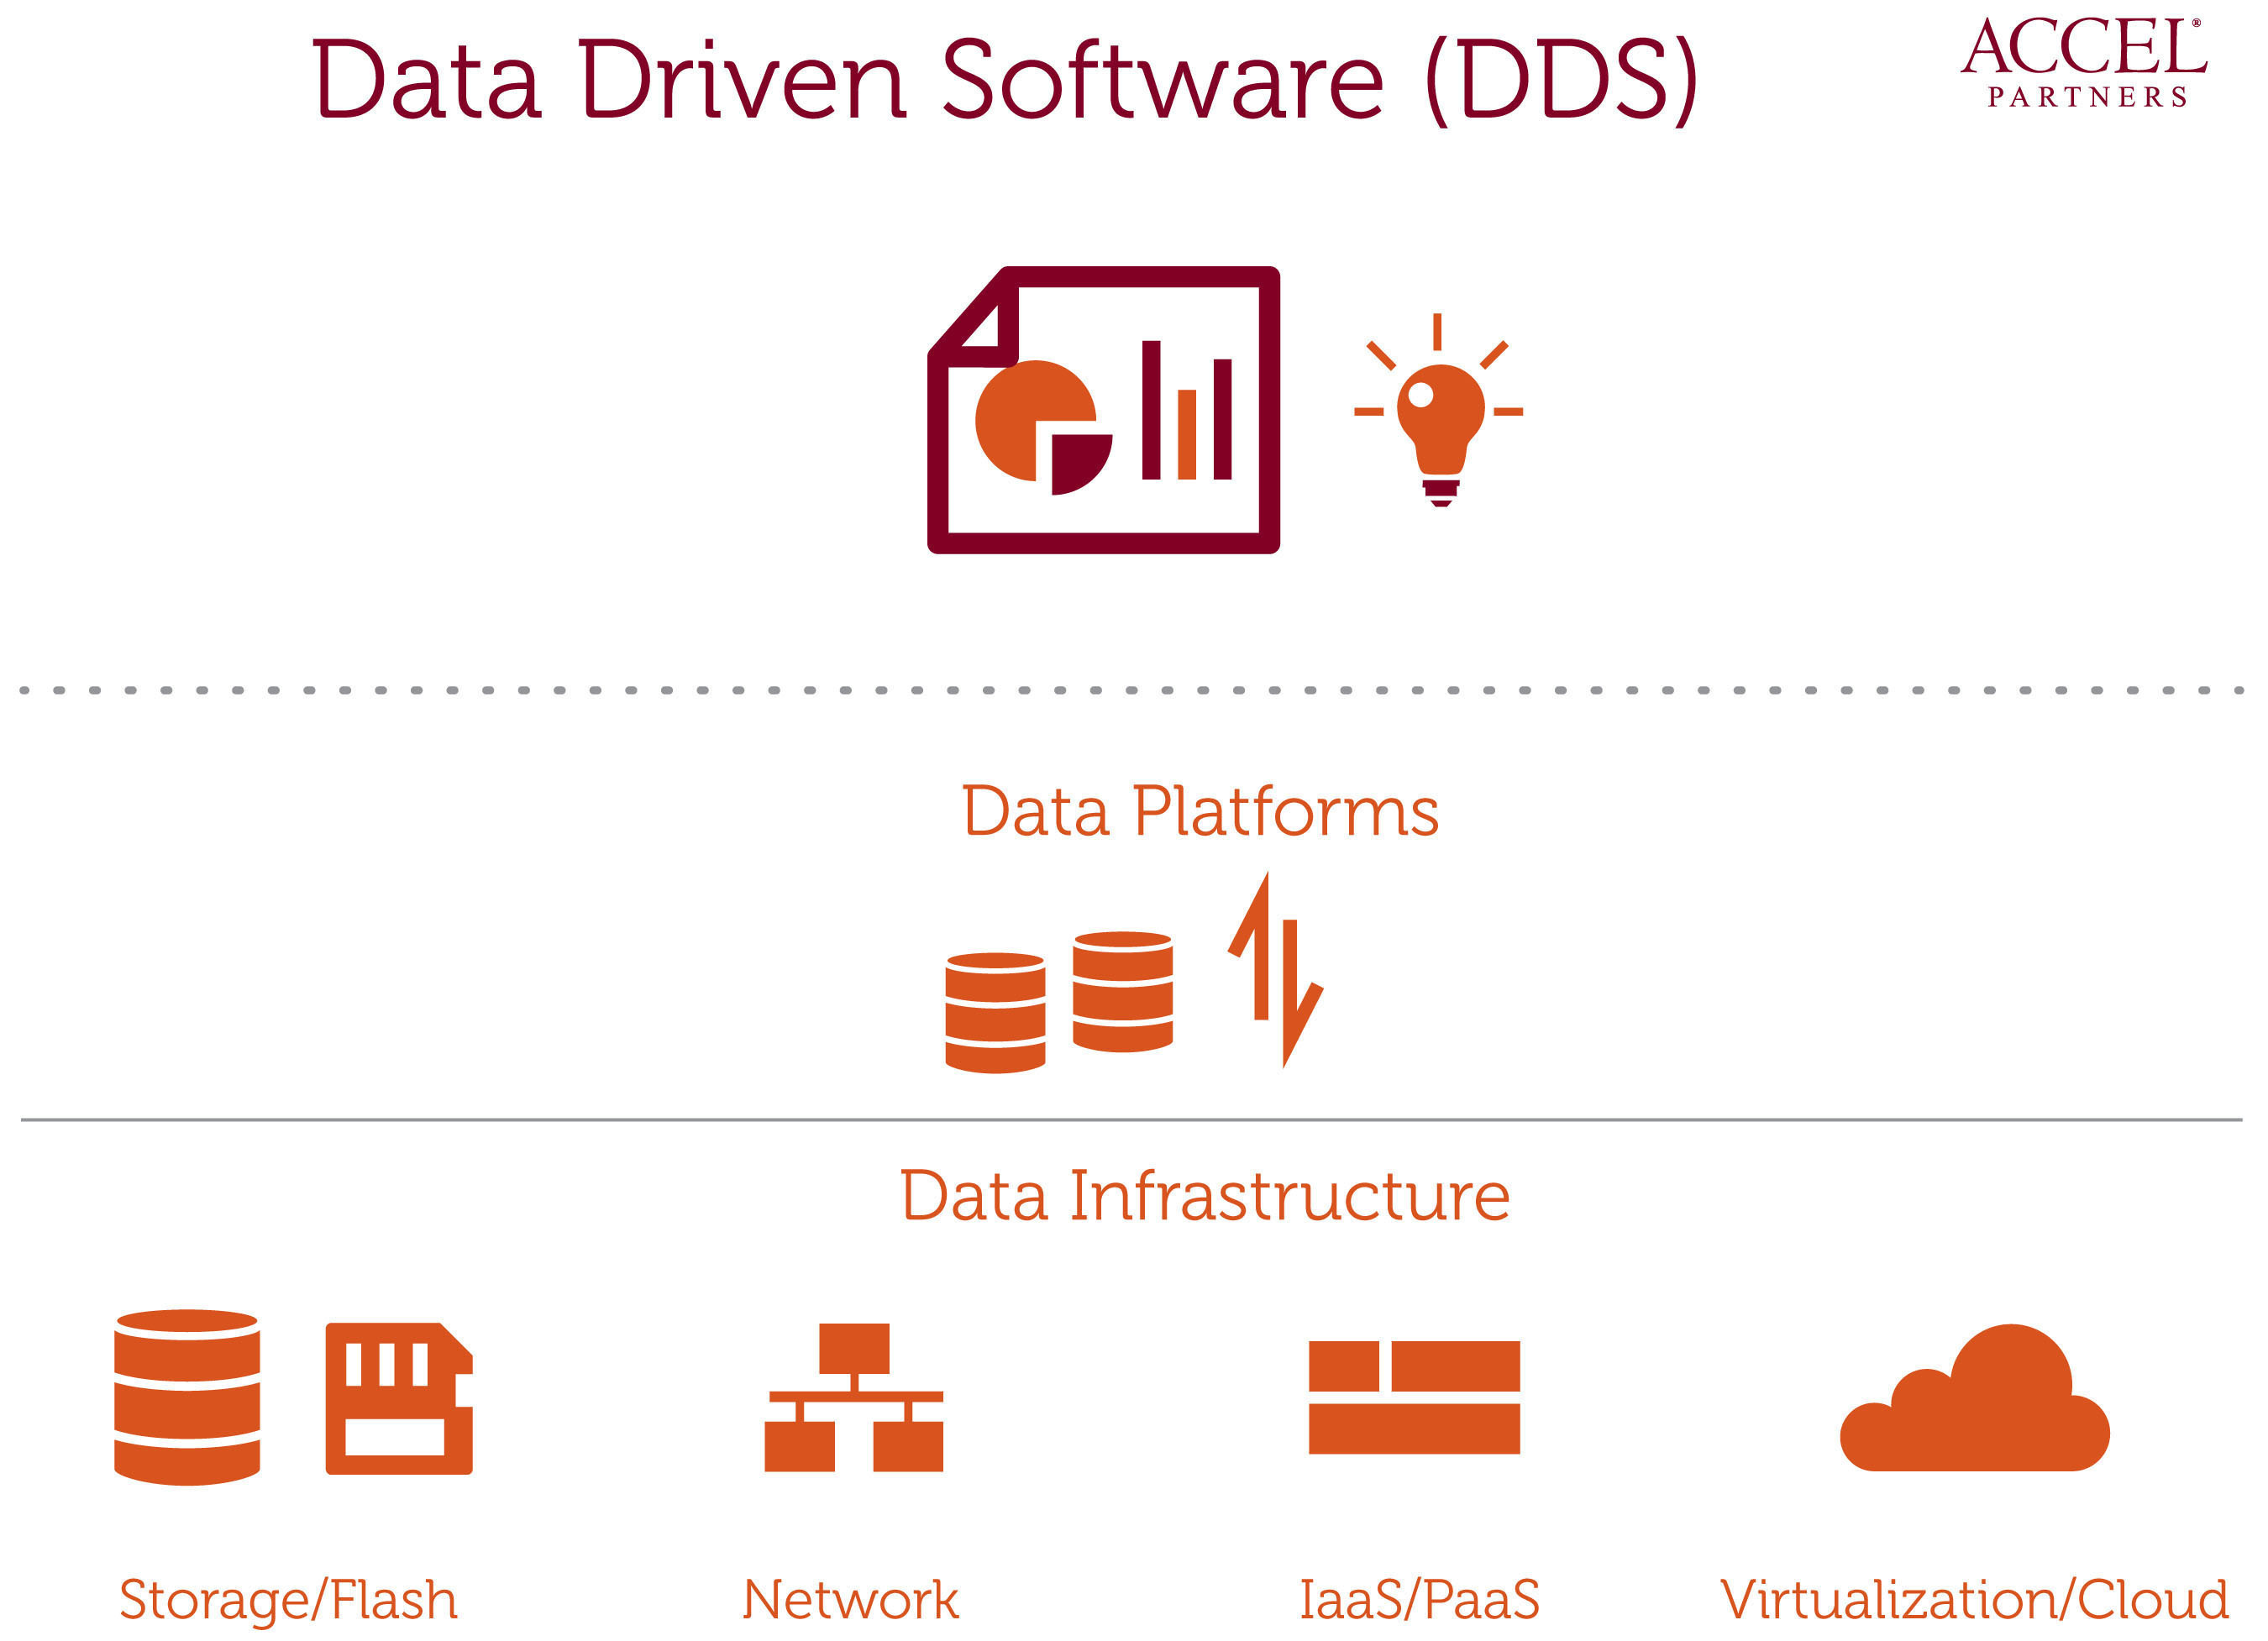 Data Driven Software (DDS) is built upon the platforms and infrastructure which were built in the early stages of big data. Accel Partners has funded a number of companies building innovative data infrastructure platforms and DDS including: Cloudera, Couchbase, Lookout, Nimble Storage, Opower, Prismatic, QlikView, RelateIQ, Sumo Logic, and Trifacta.  (PRNewsFoto/Accel Partners)